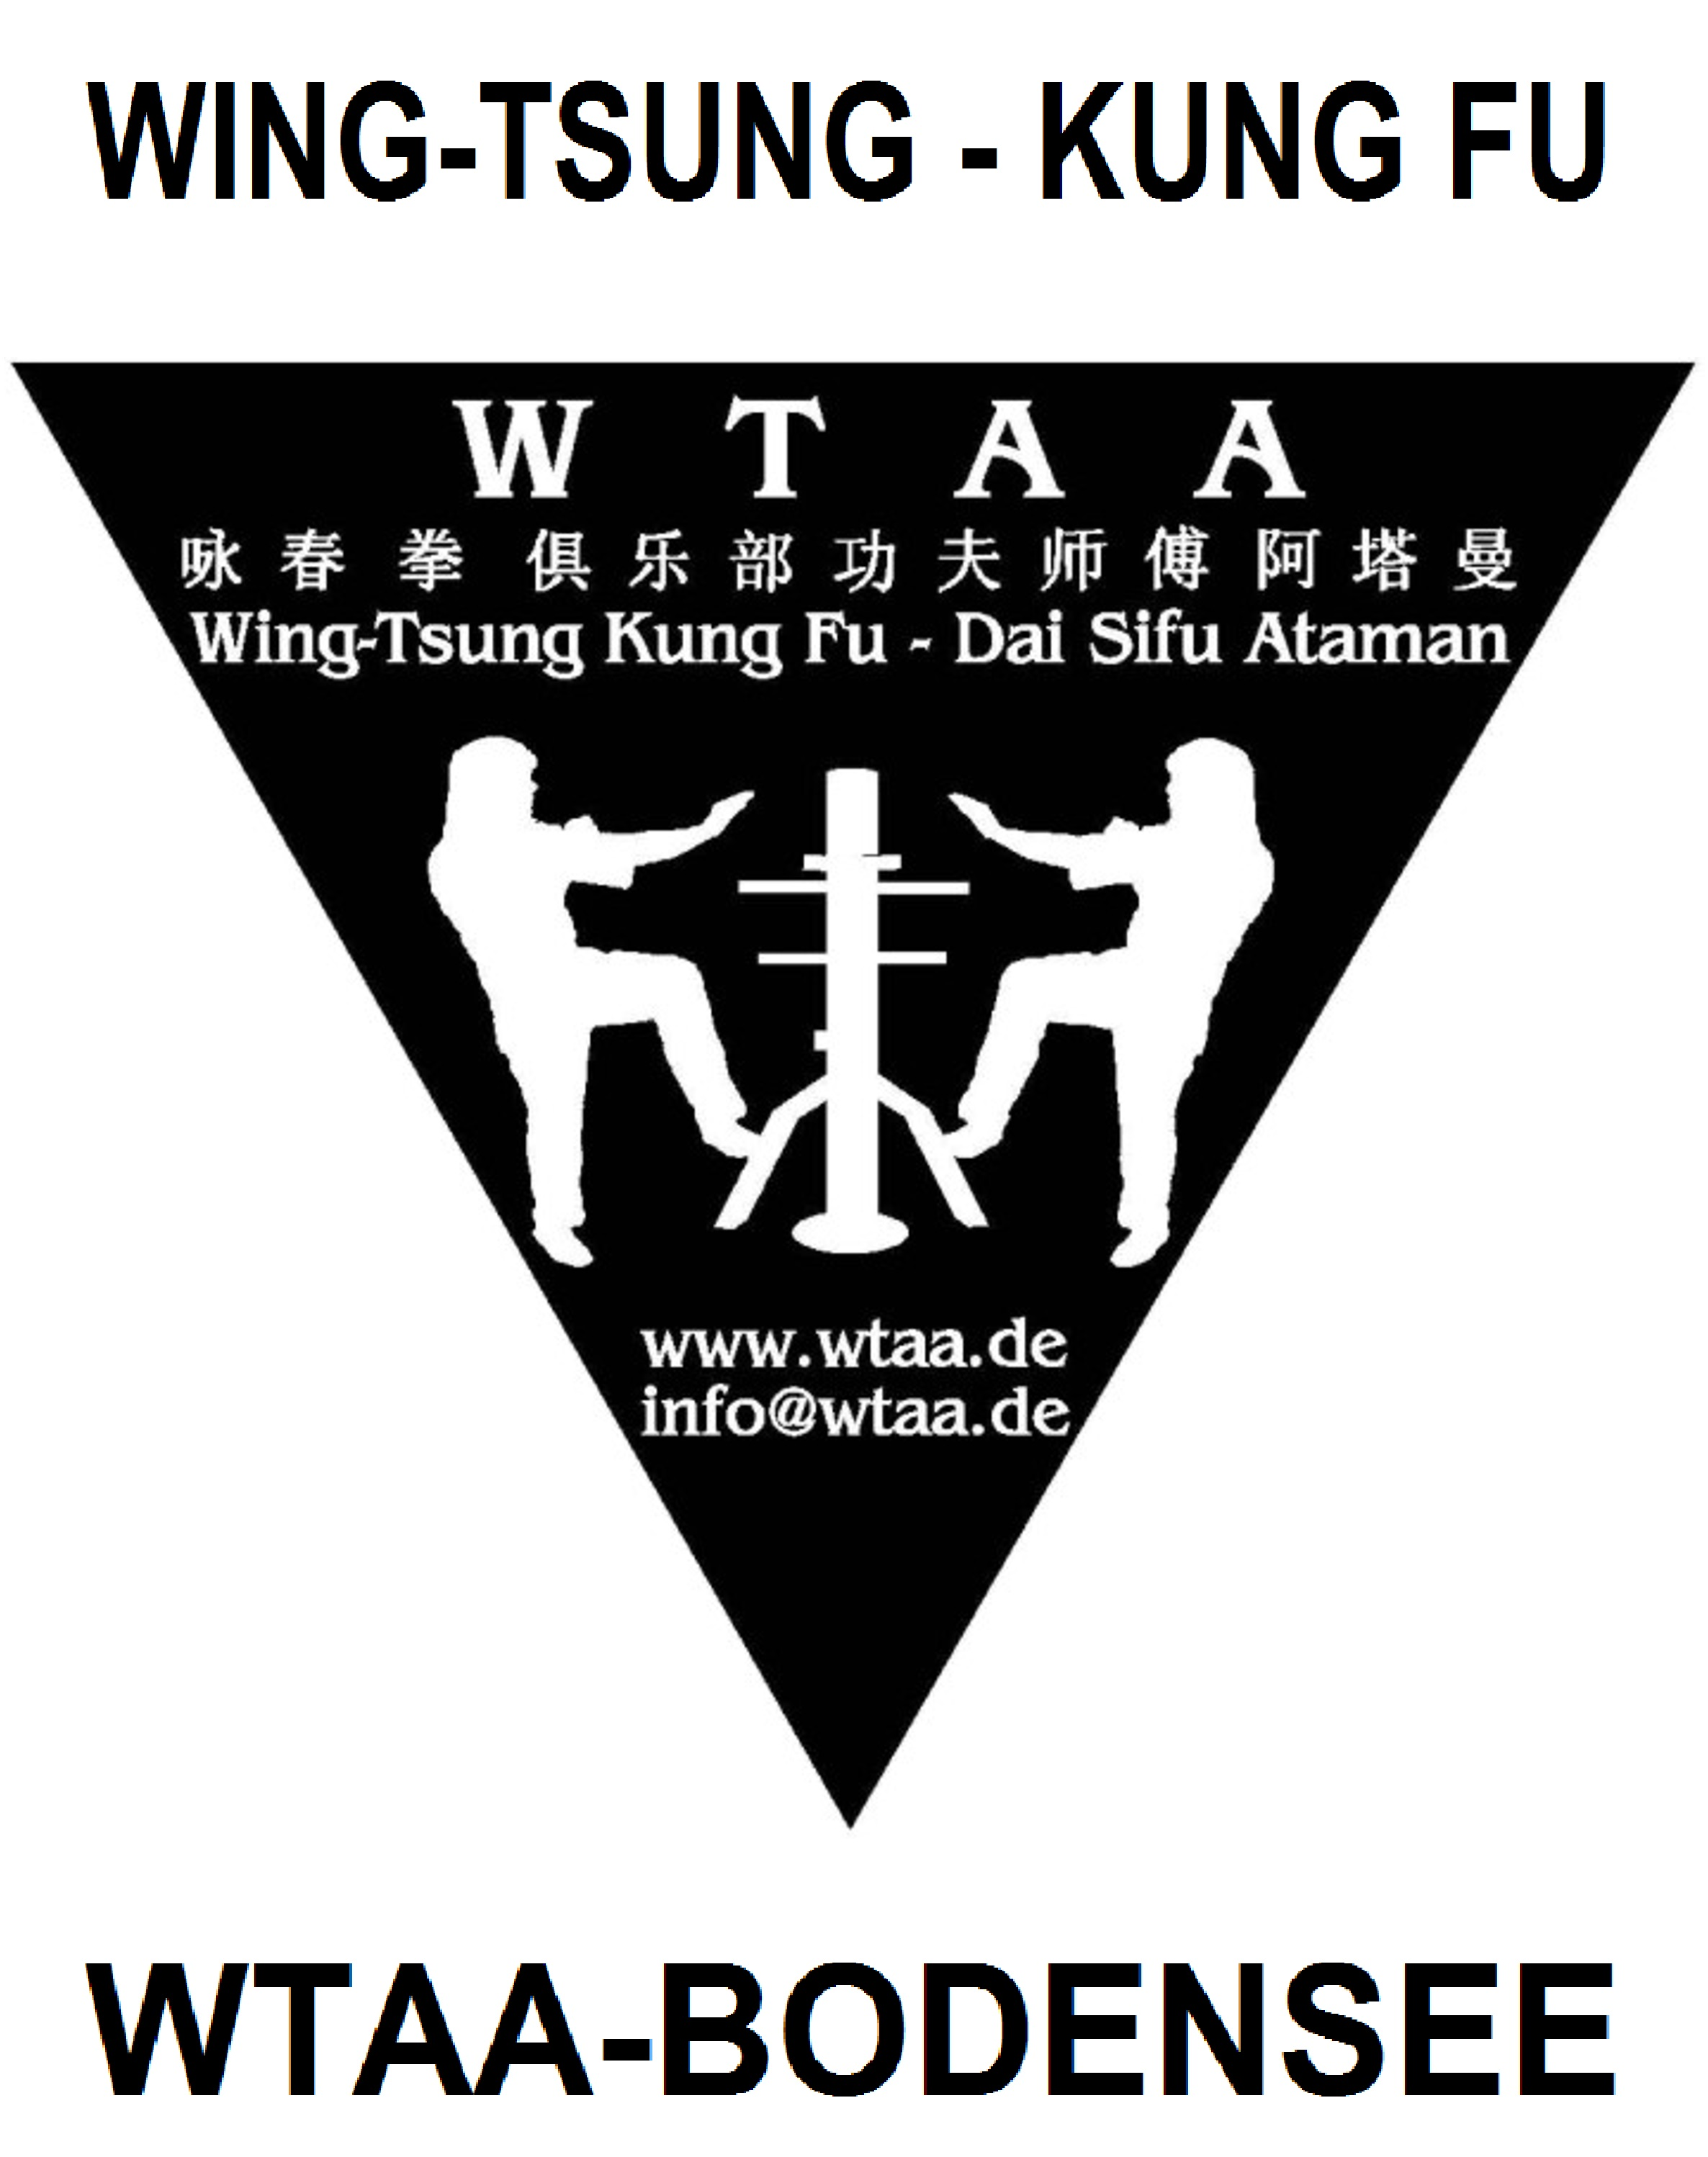 WTAA-Bodensee